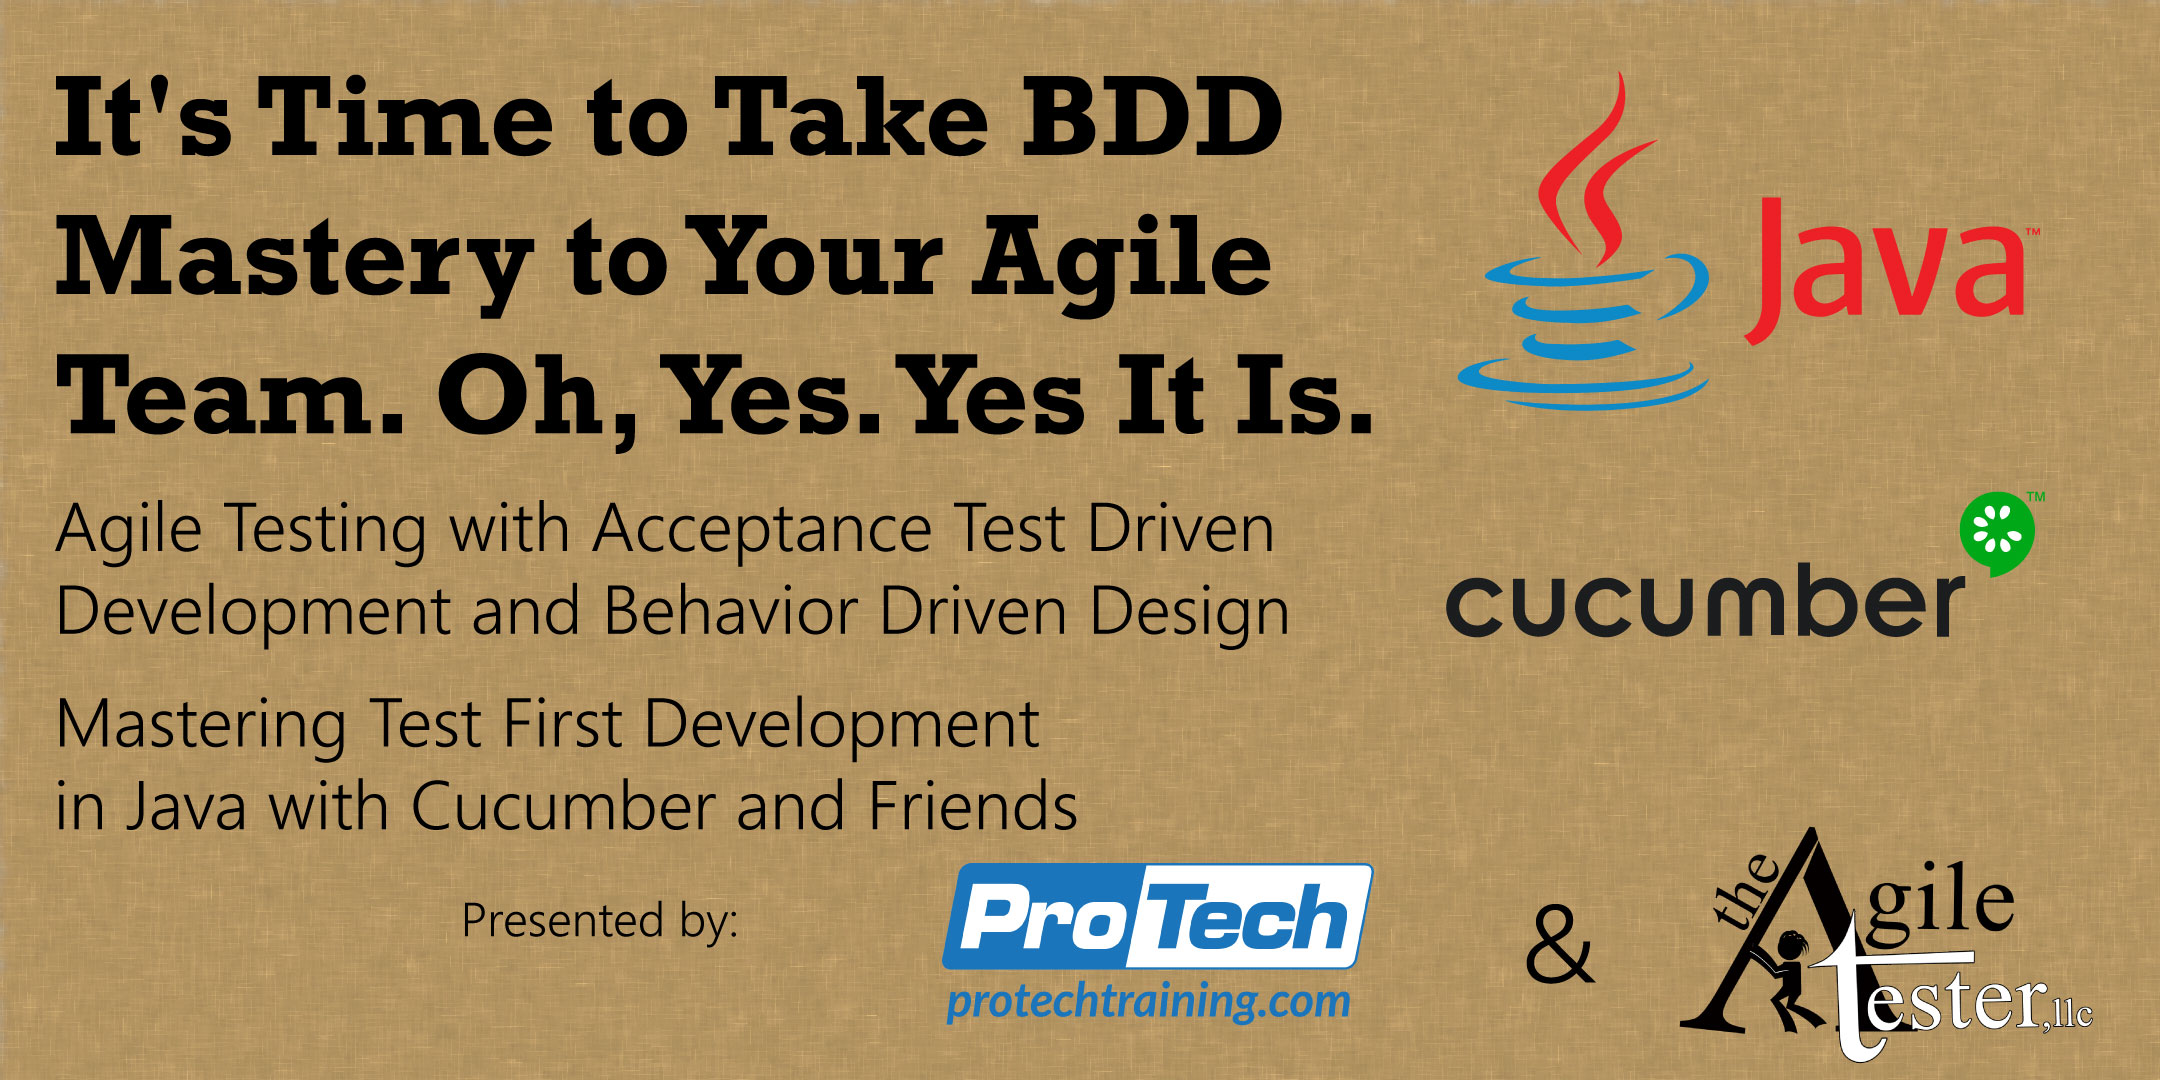 It's Time to Take BDD Mastery to Your Agile Team. Oh Yes. Yes It Is.